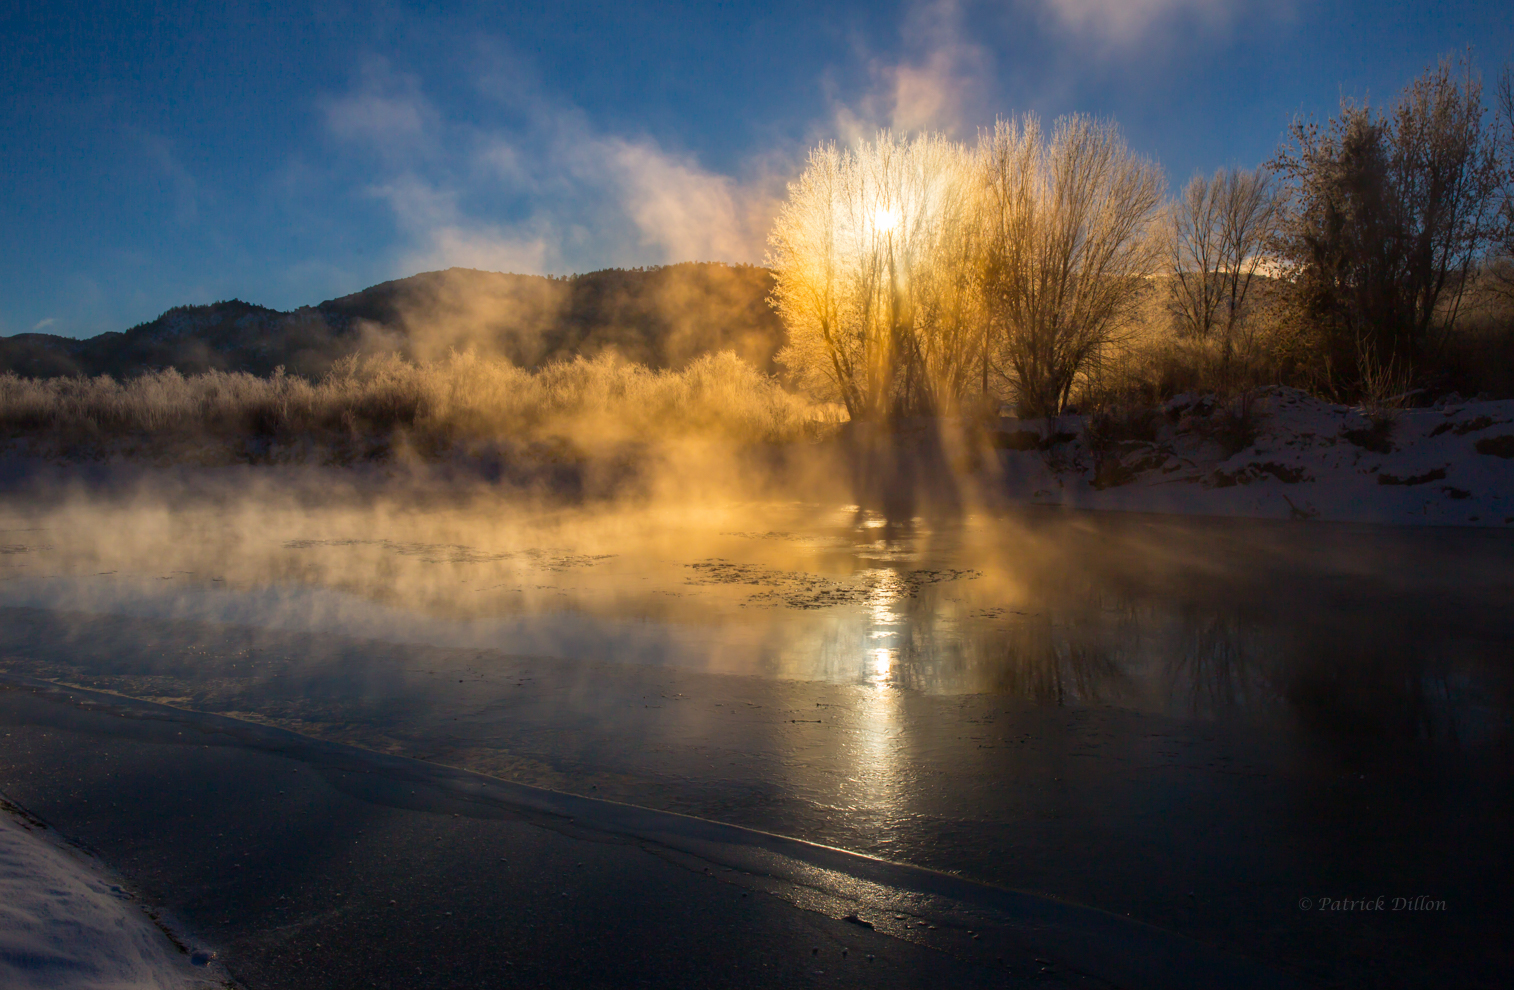 animas-river-sunrise-subzero-ice-and-steam-refections-reflections-7359